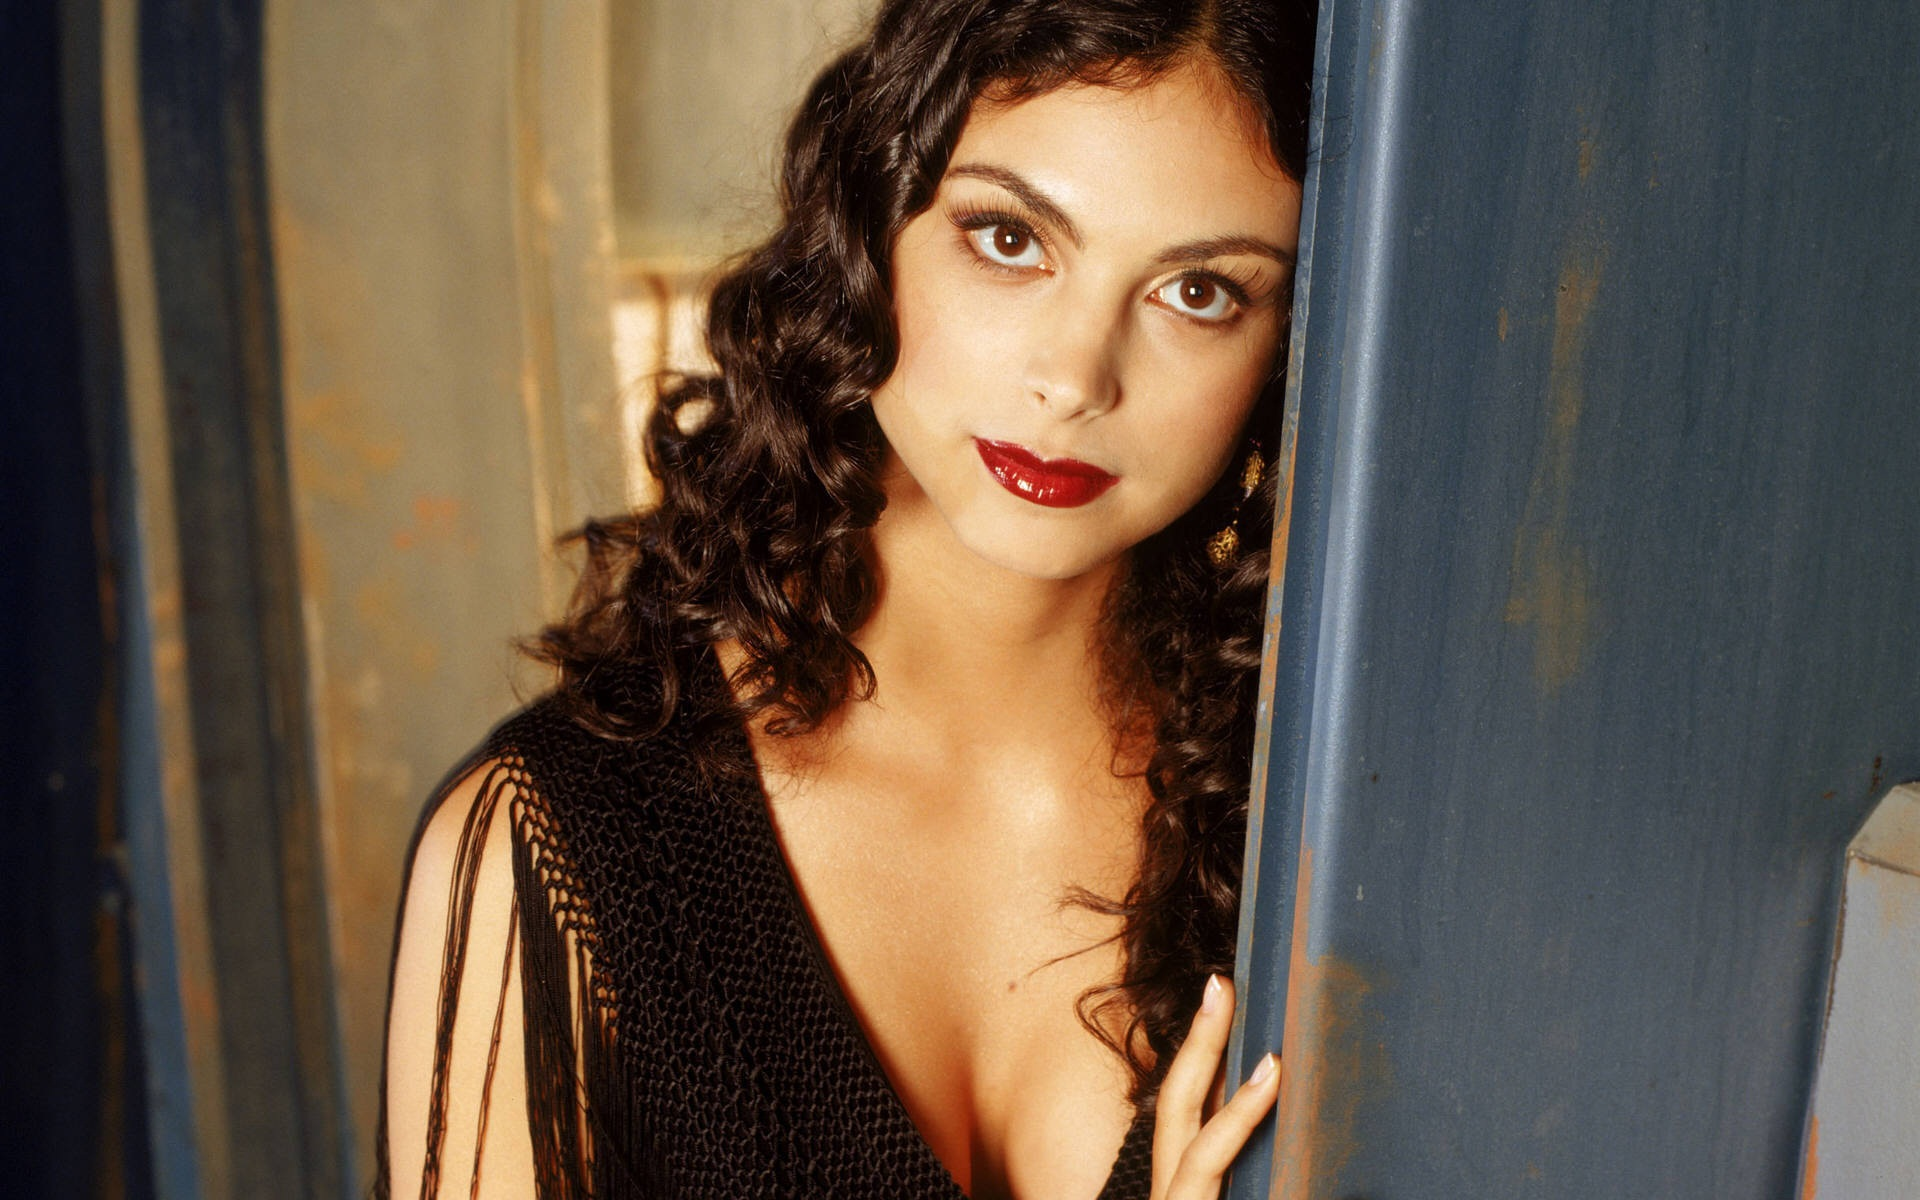 Morena Baccarin High Definition Wallpapers